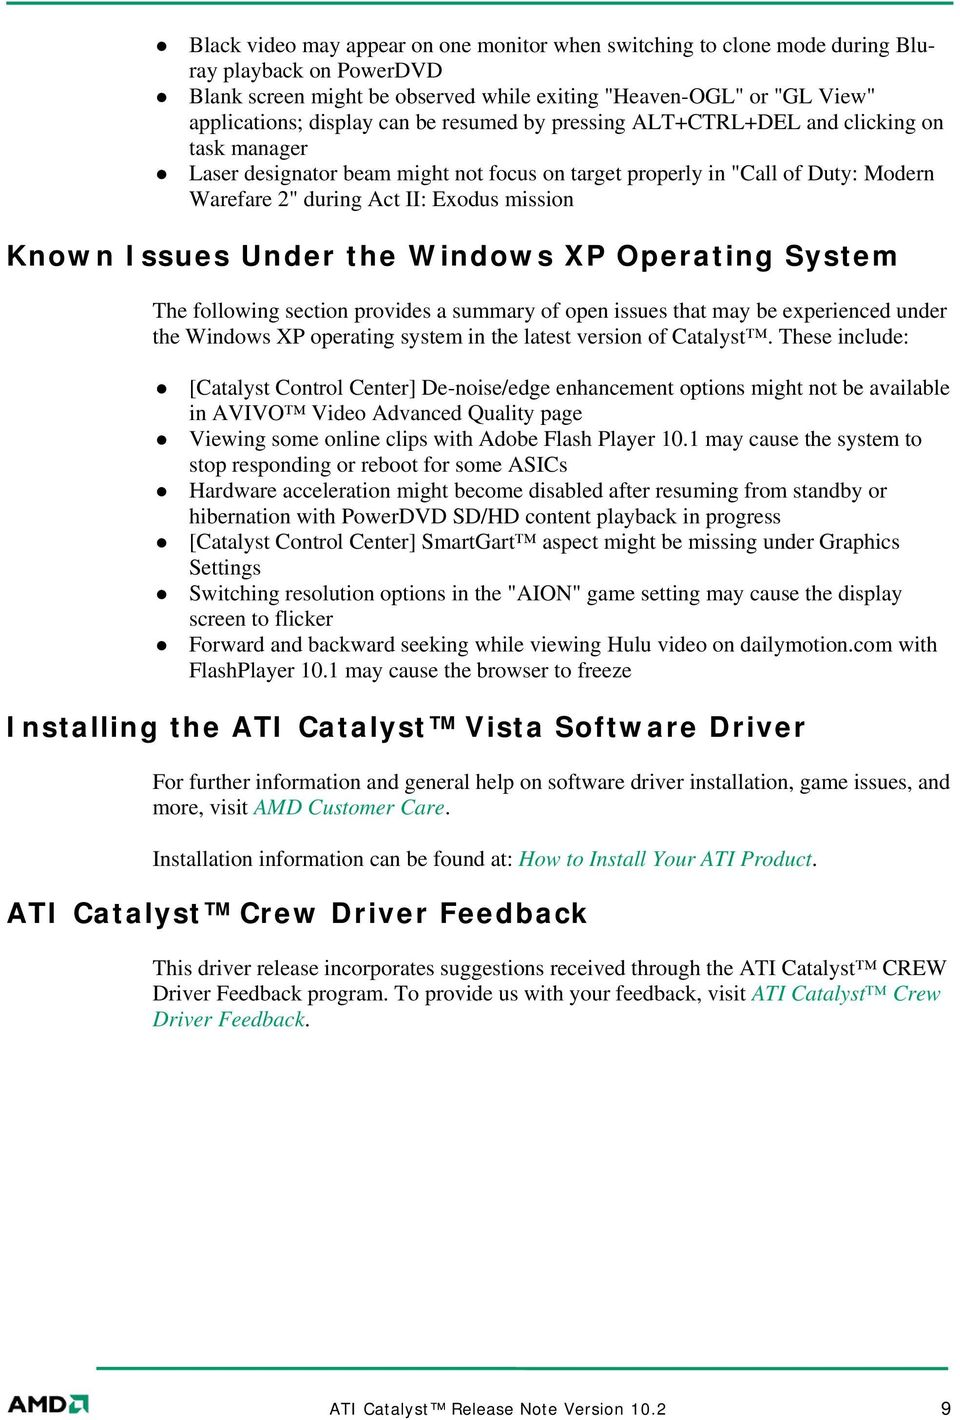 ATI Catalyst Software Suite Version 10 2 Release Notes - PDF